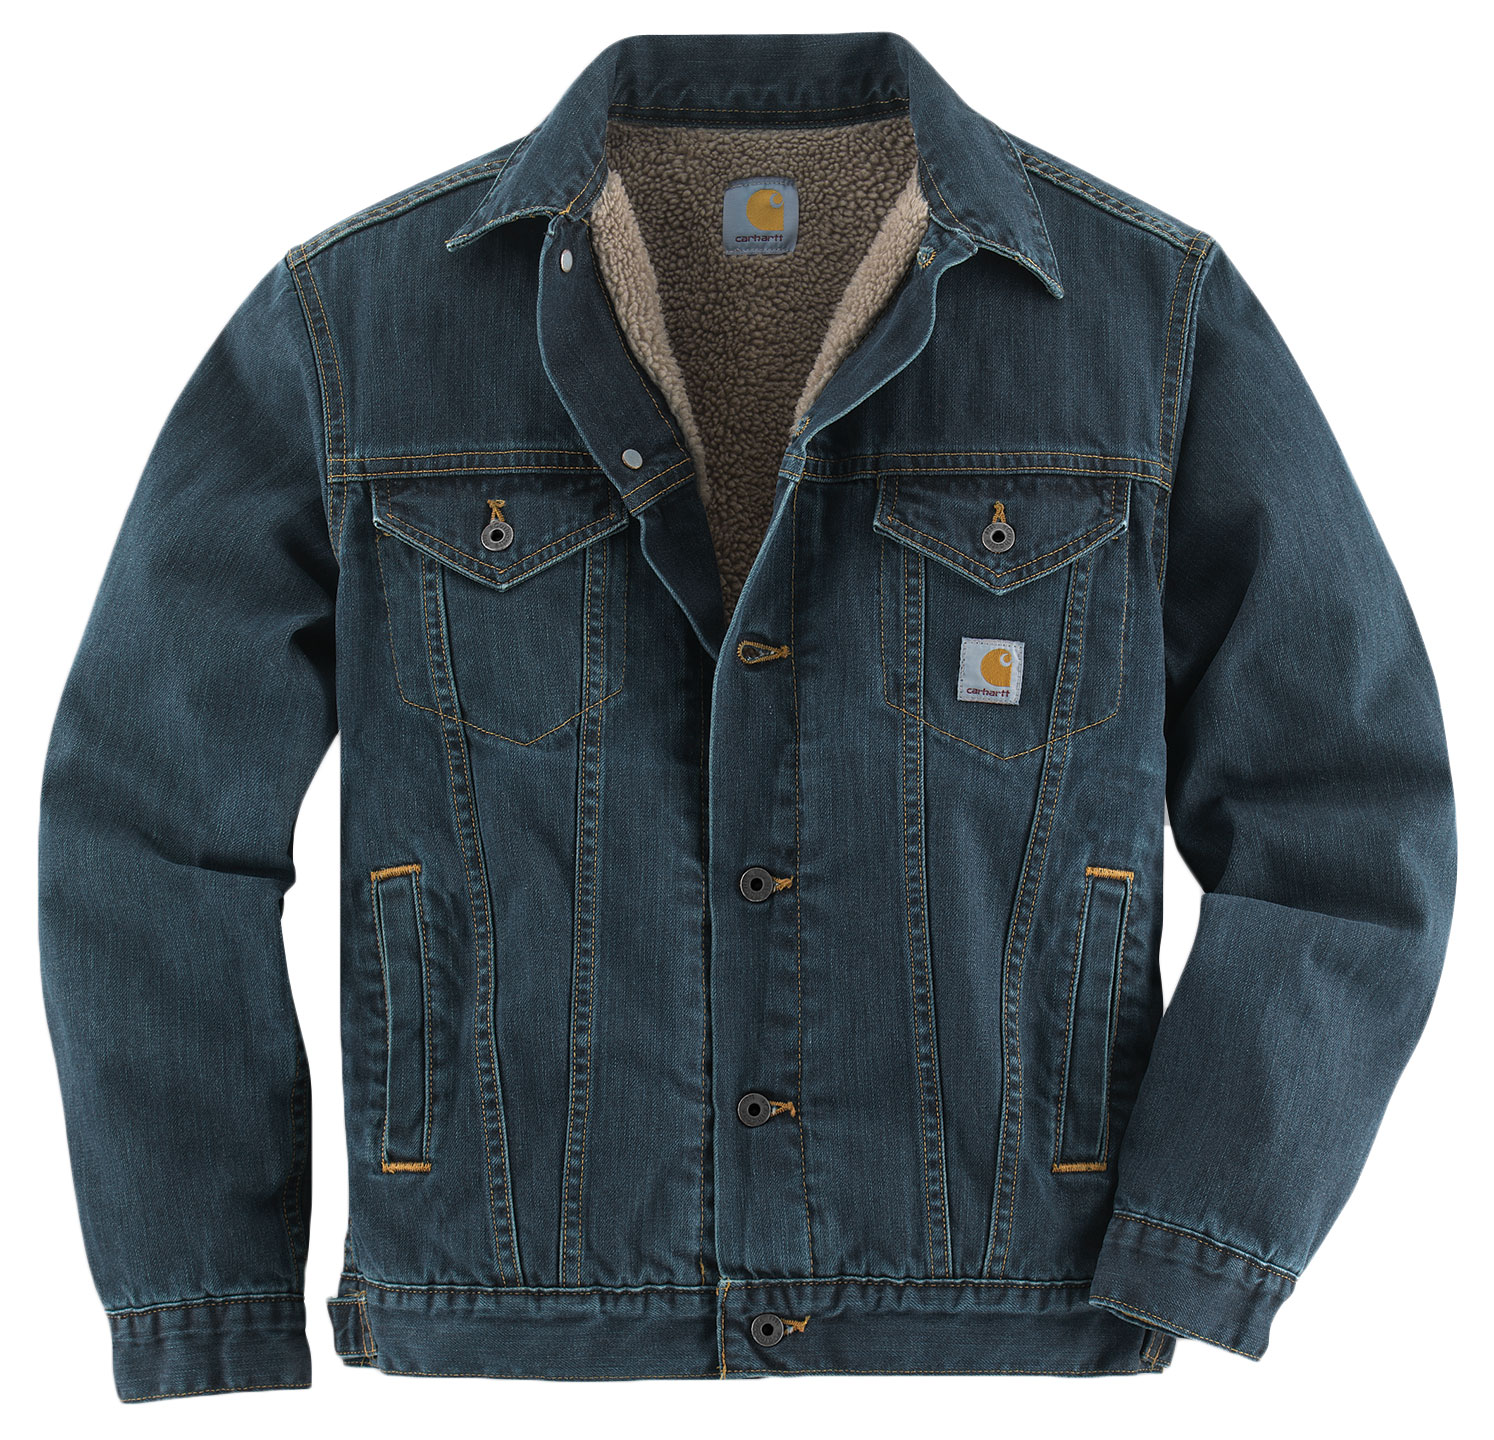 Carhartt Mens Denim Jean Jacket/Sherpa Lined